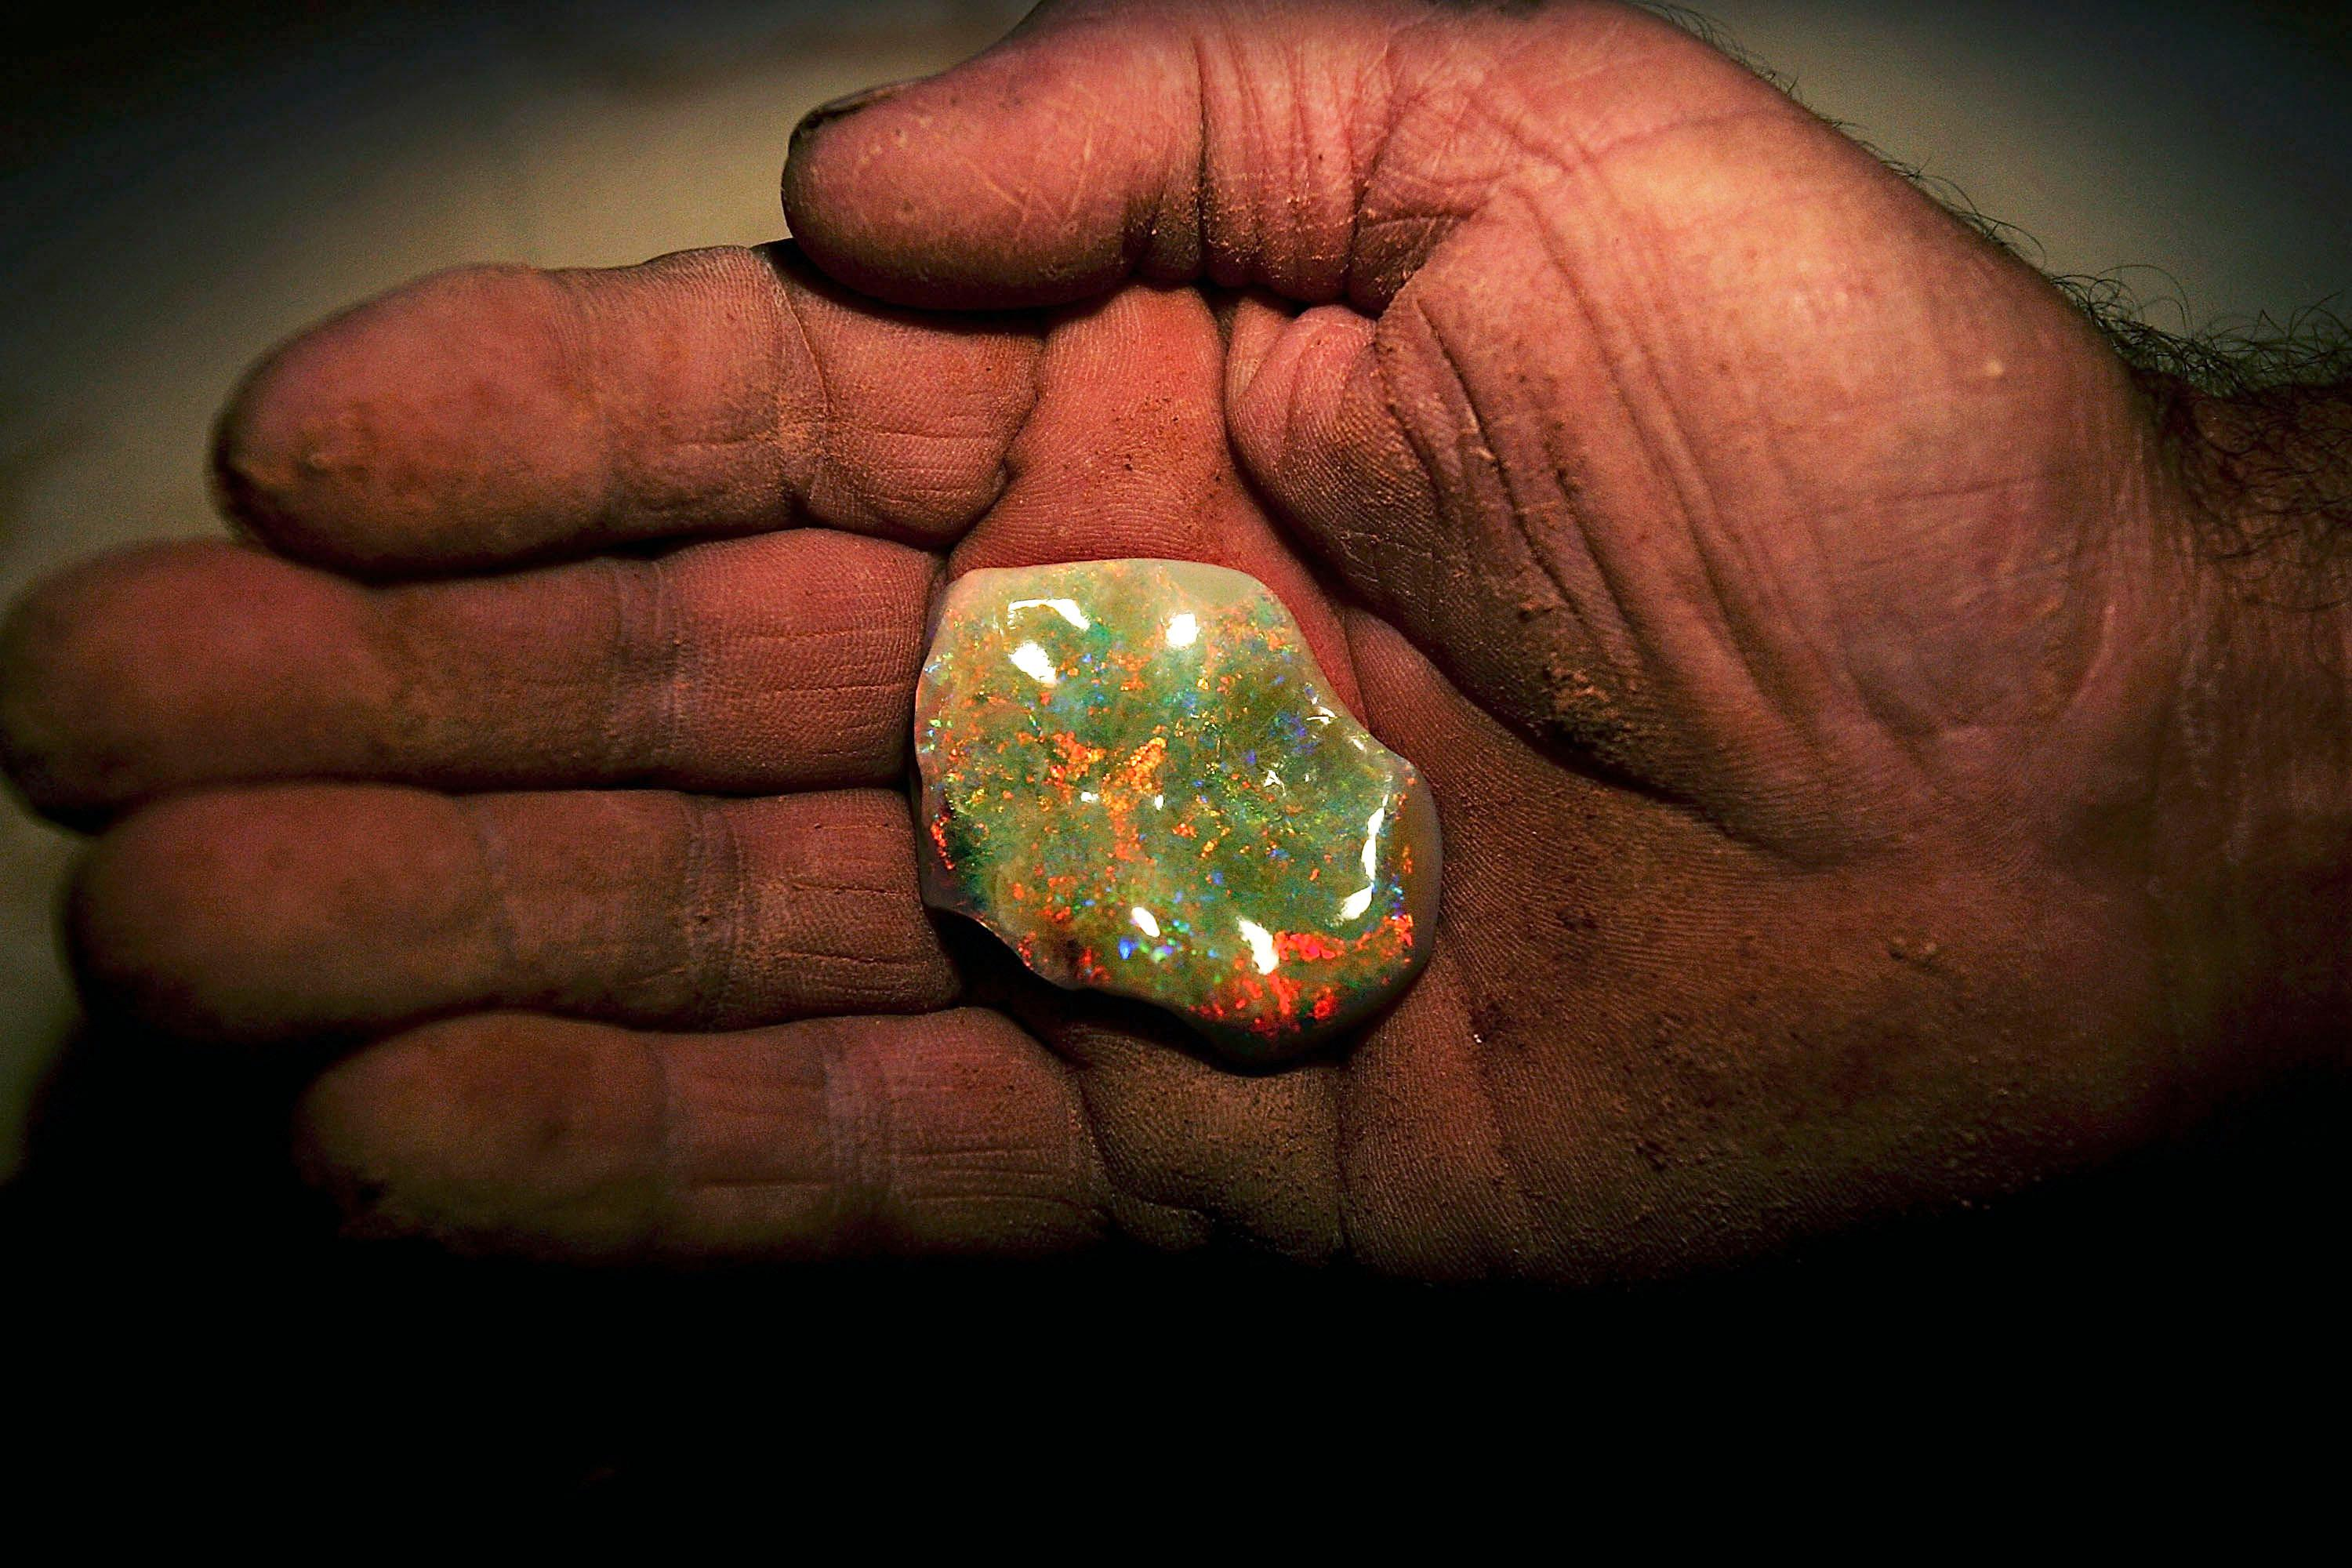 Coober Pedy miner holds a finished opal